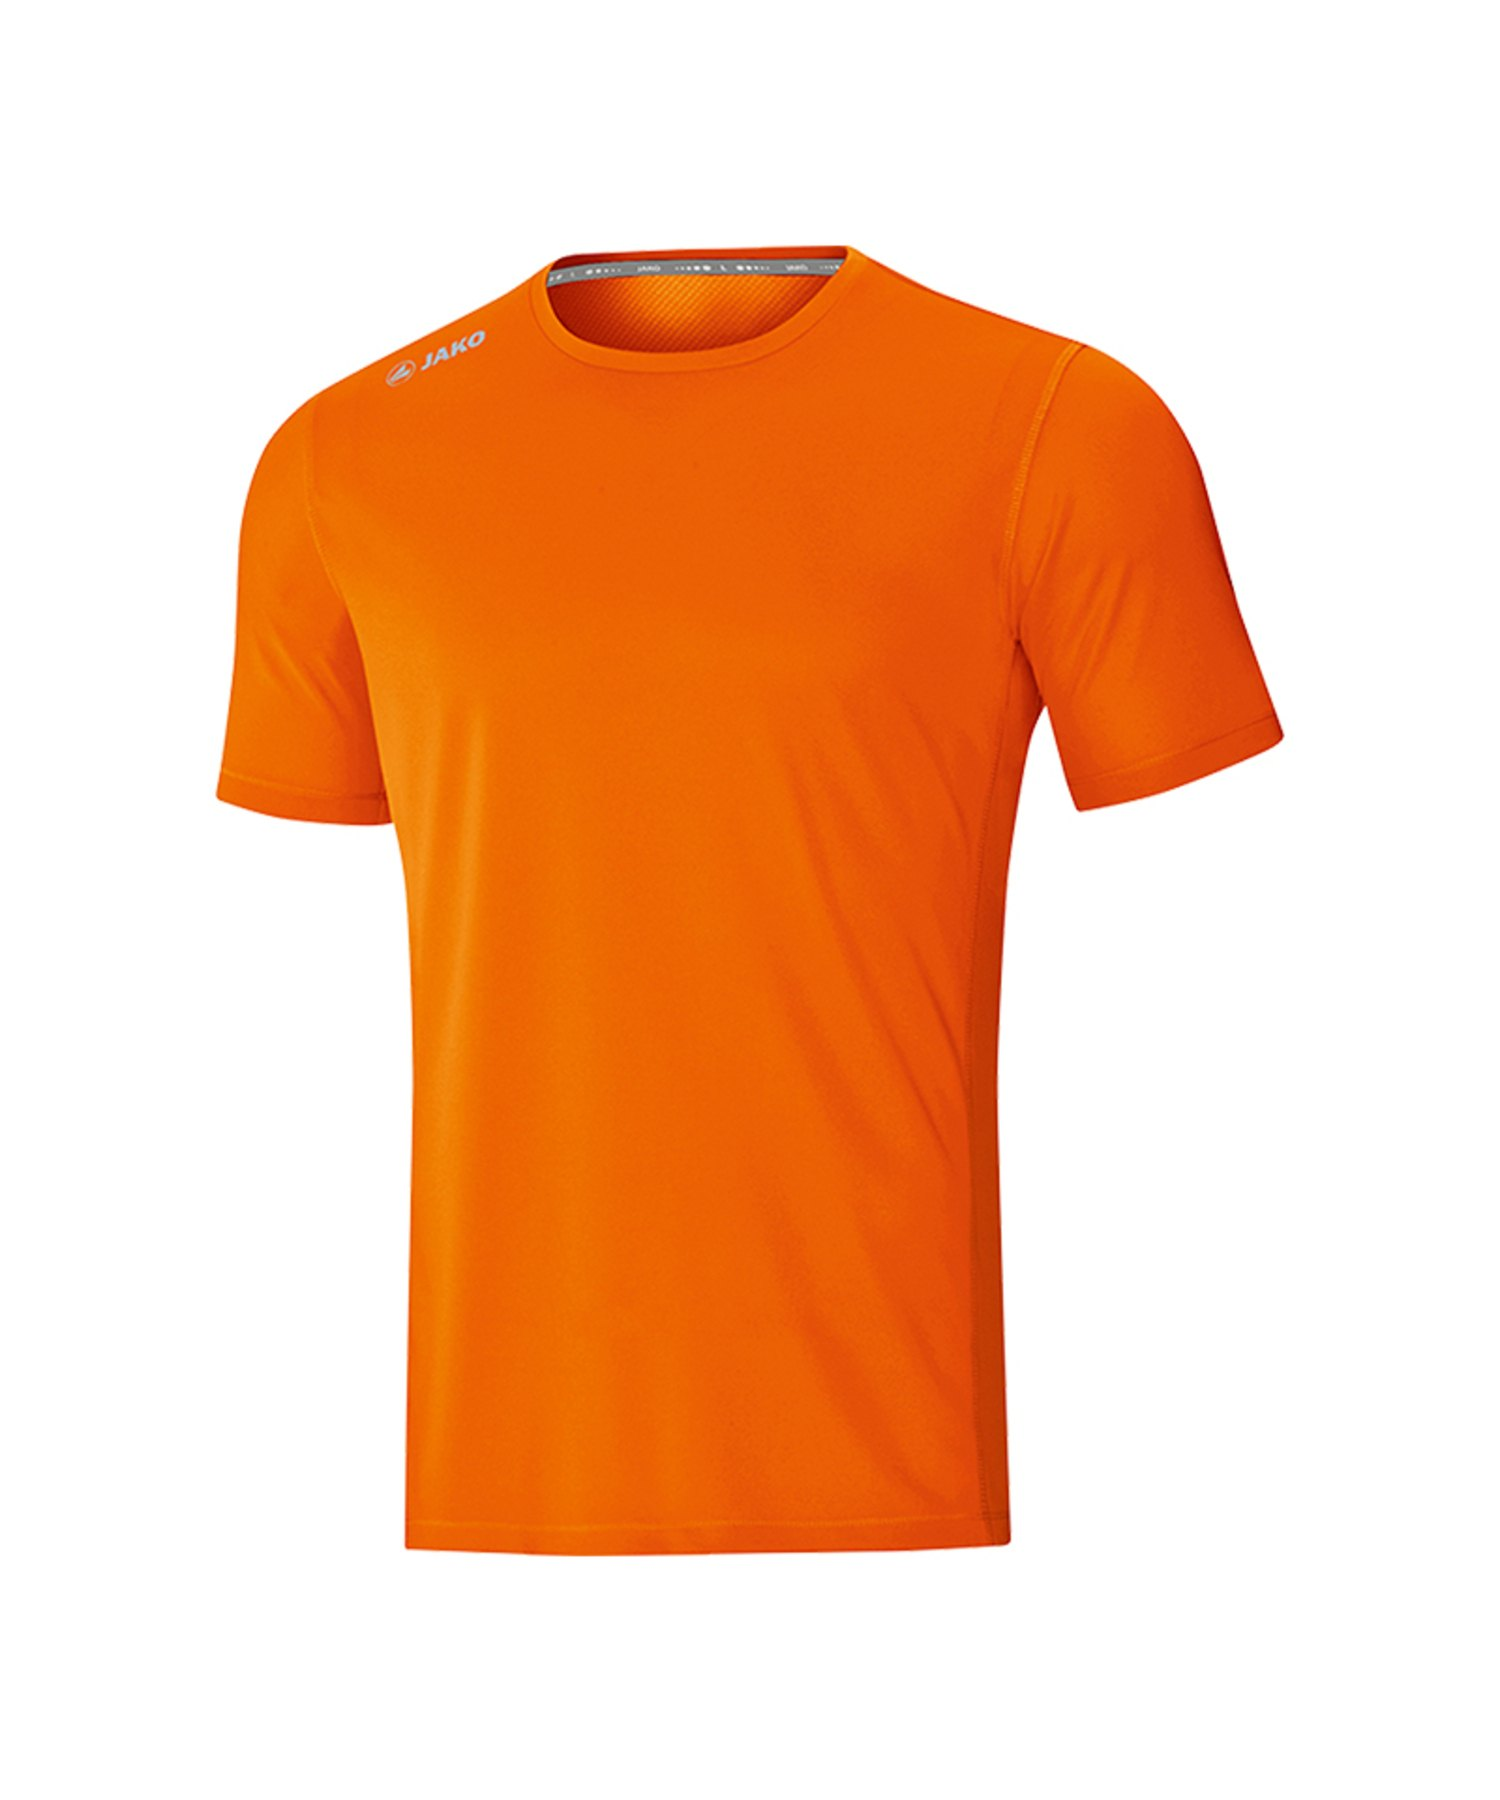 Jako Run 2.0 T-Shirt Running Kids Orange F19 - Orange